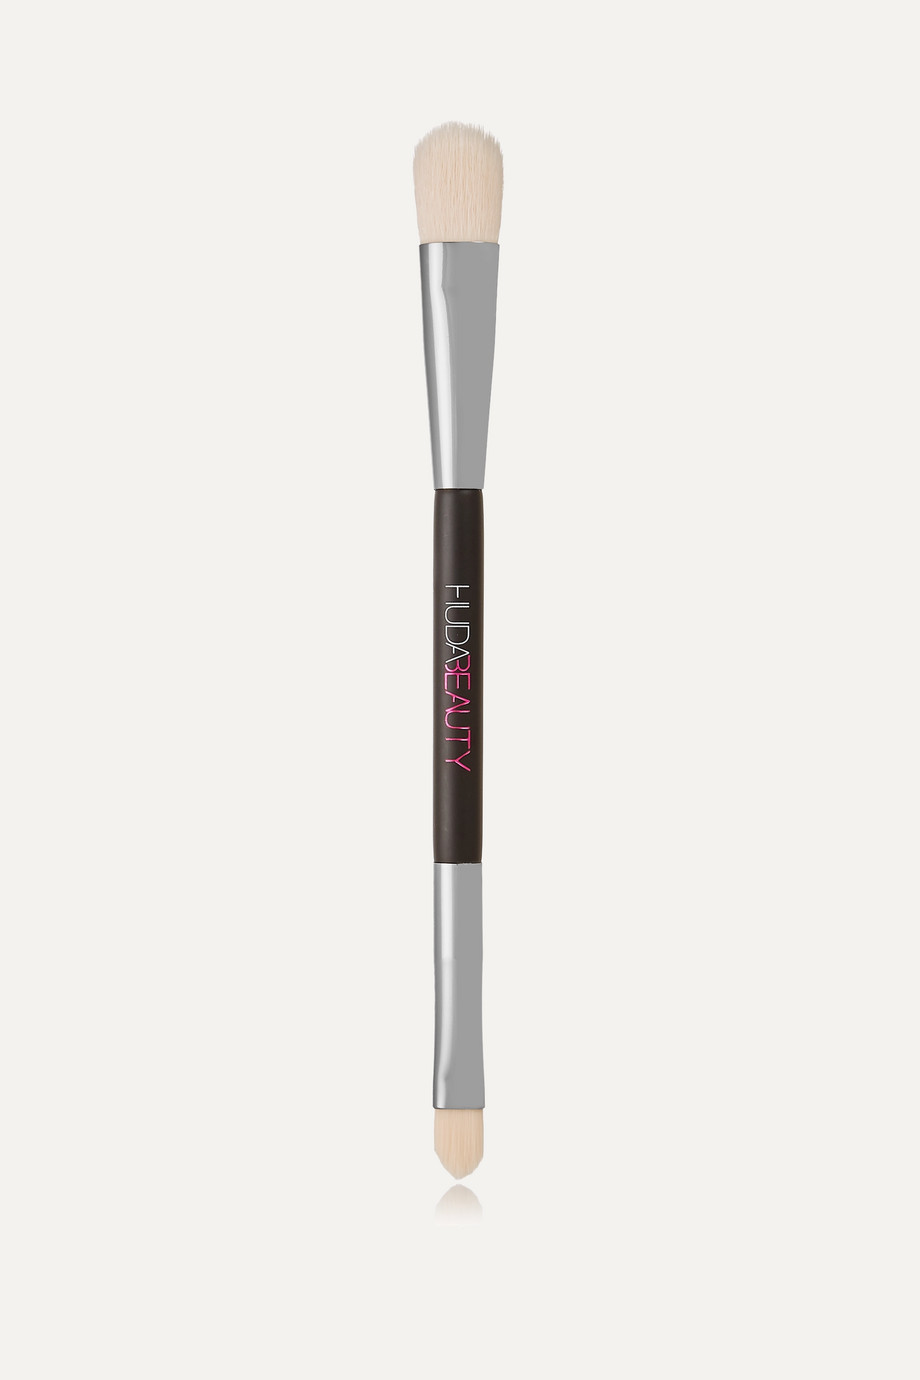 Huda Beauty Conceal & Blend Dual-Ended Concealing Complexion Brush